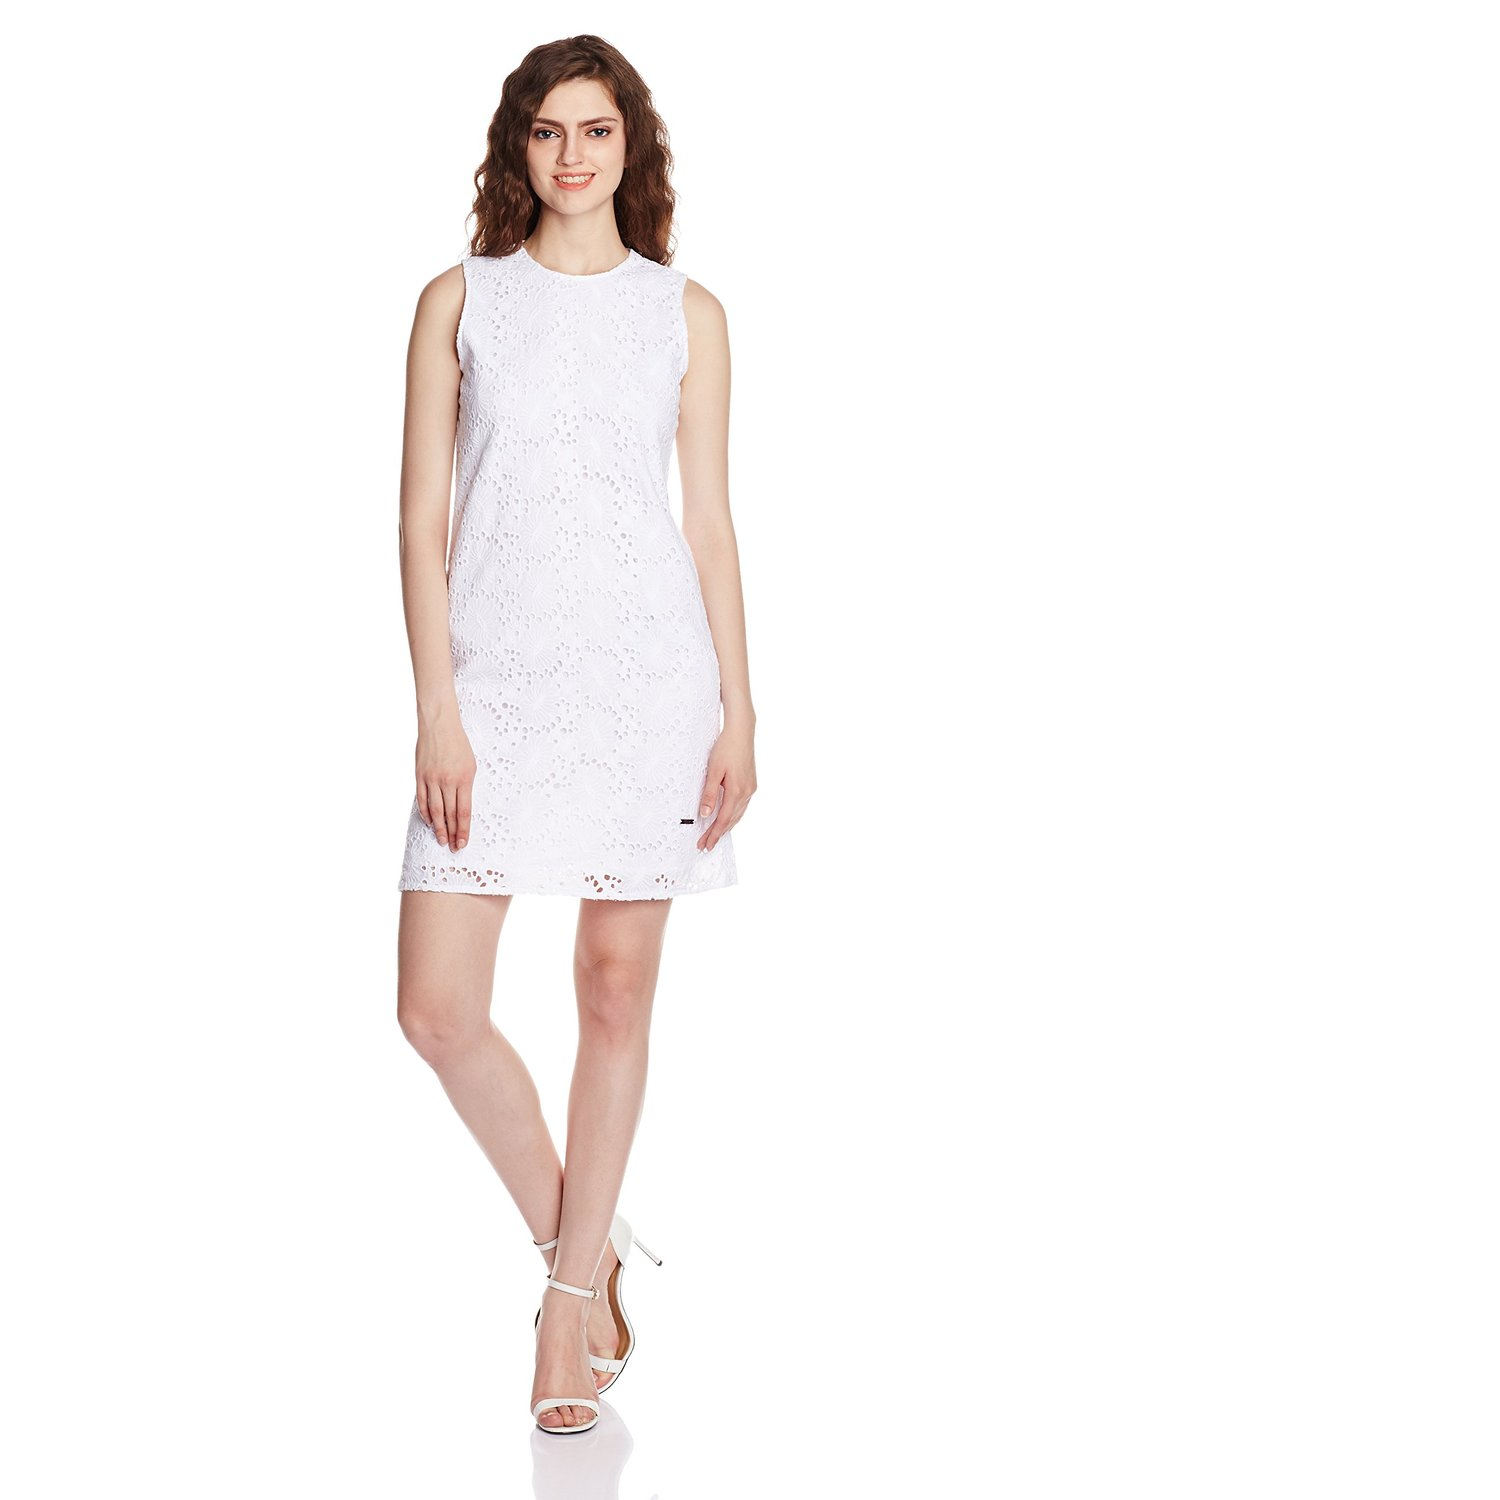 Pepe Jeans Women's Cotton A-Line Dress